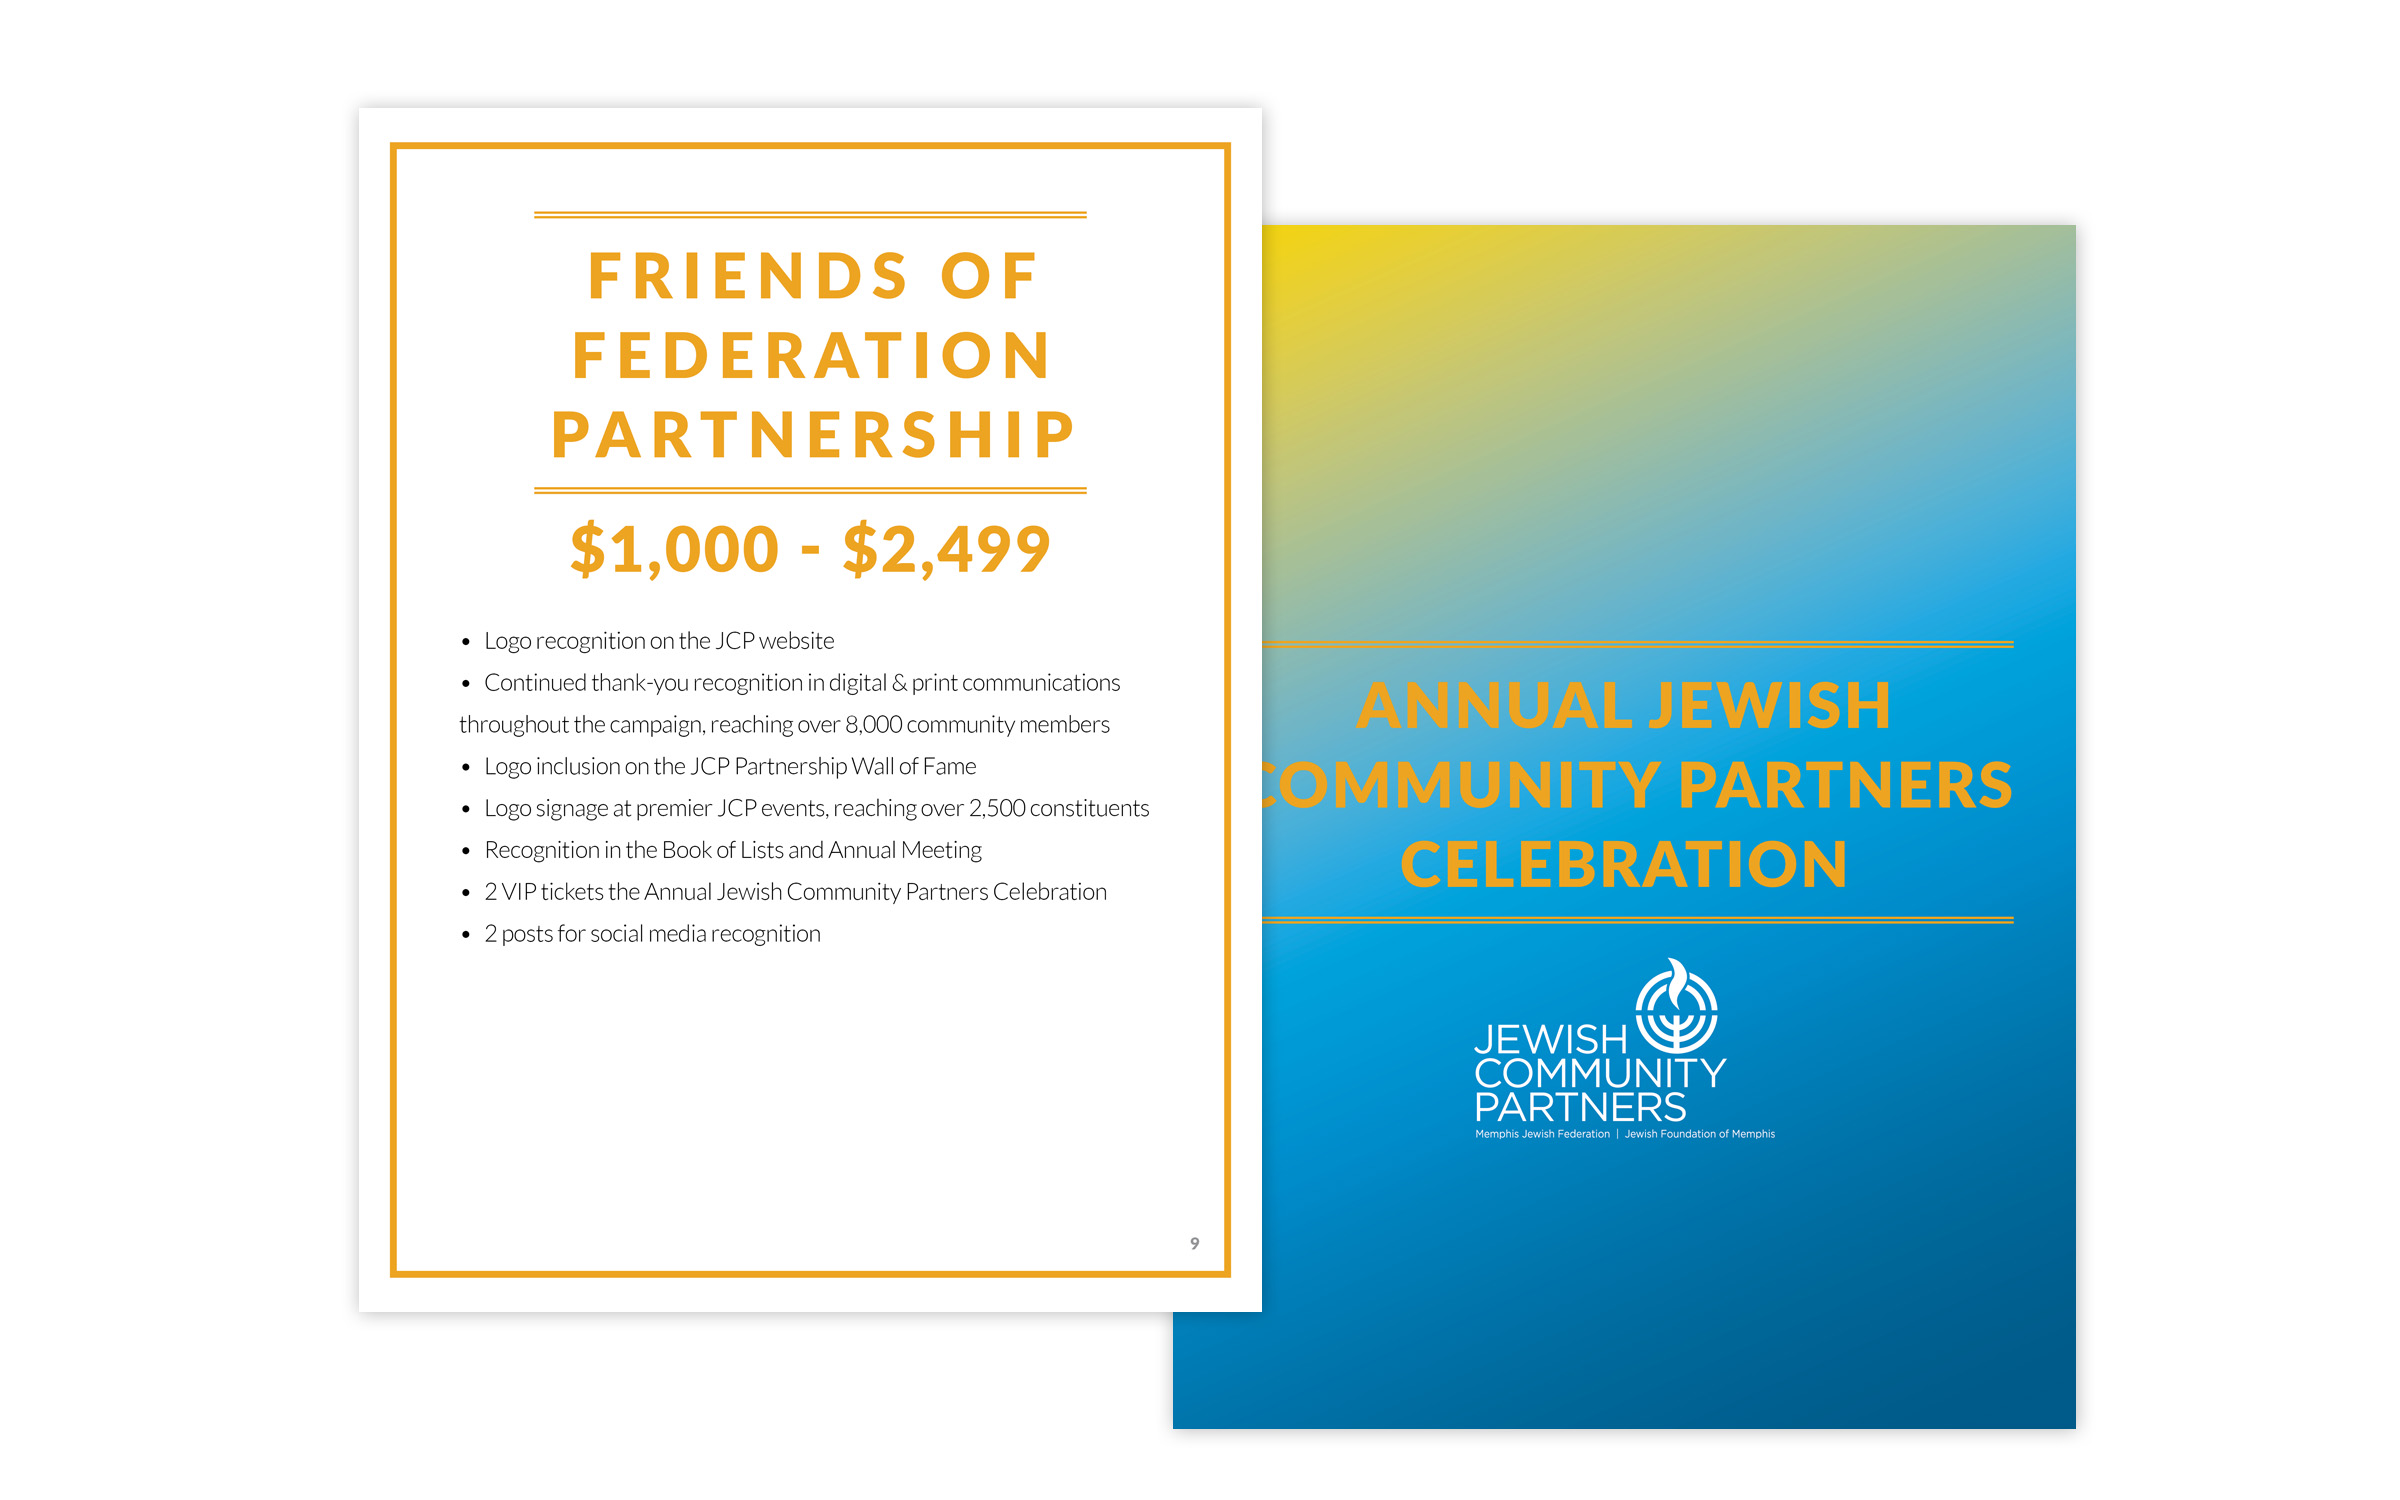 Jewish-Community-Partners_Event-Guide_Print-Design_Spark-Printing_Dreamcapture_Memphis-TN_5